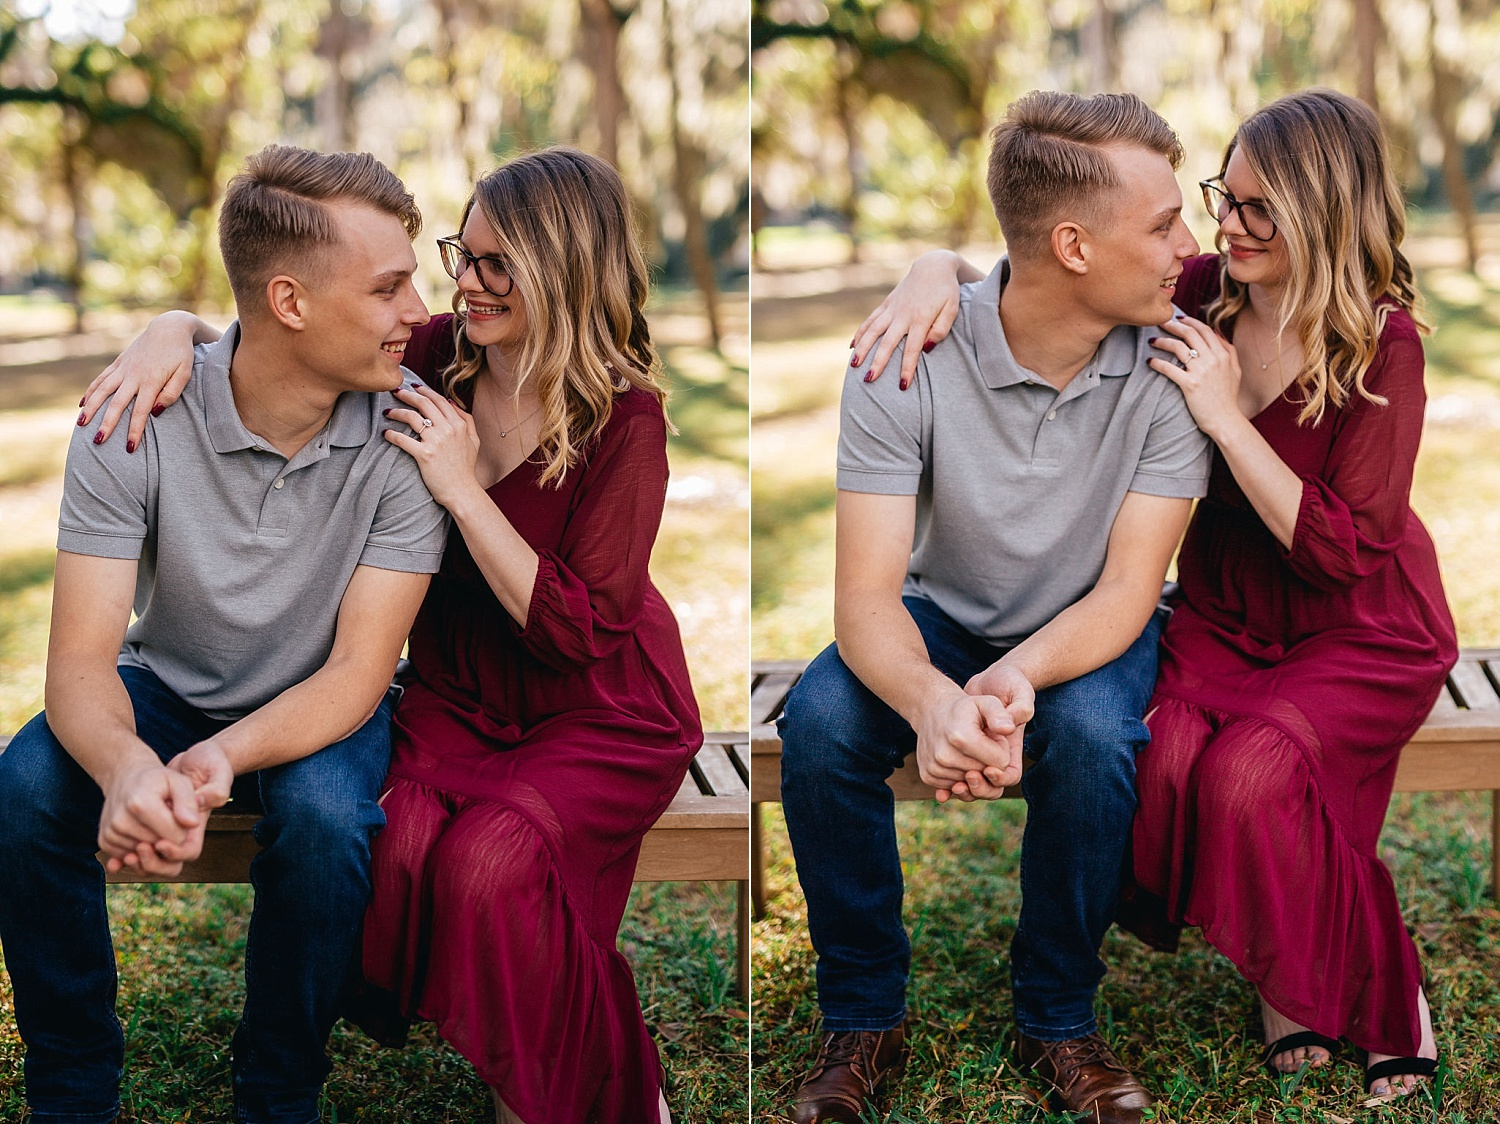 HighlightStudios-LifestyleEngagementPhotos-EmmeandCaleb-38_Engagement Session South Tampa.jpg